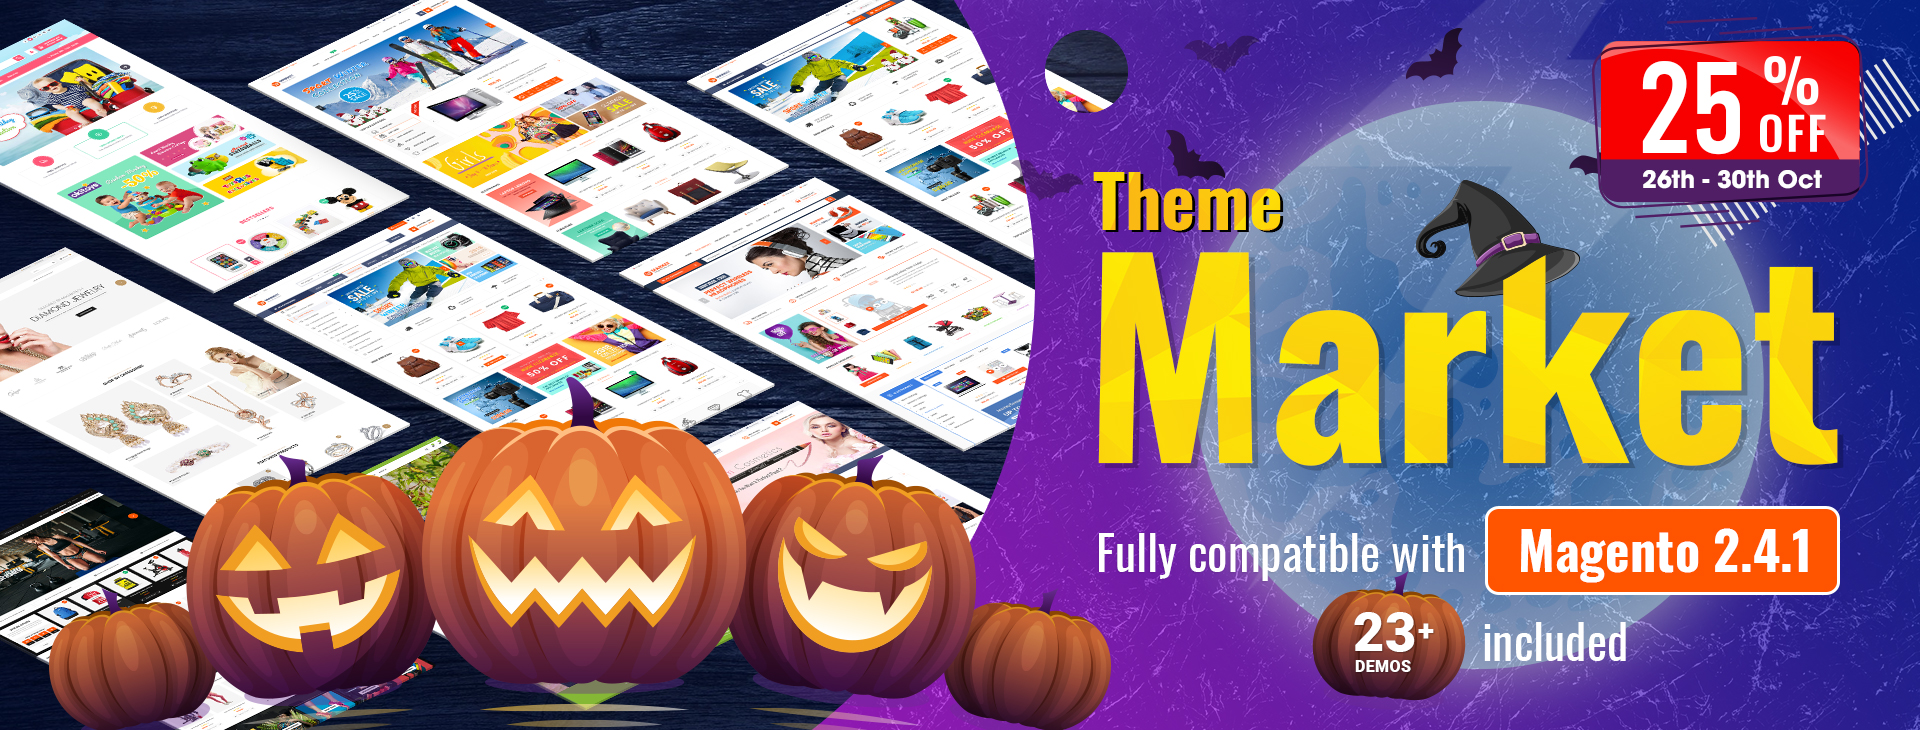 SM Market - The best Magento 2 theme